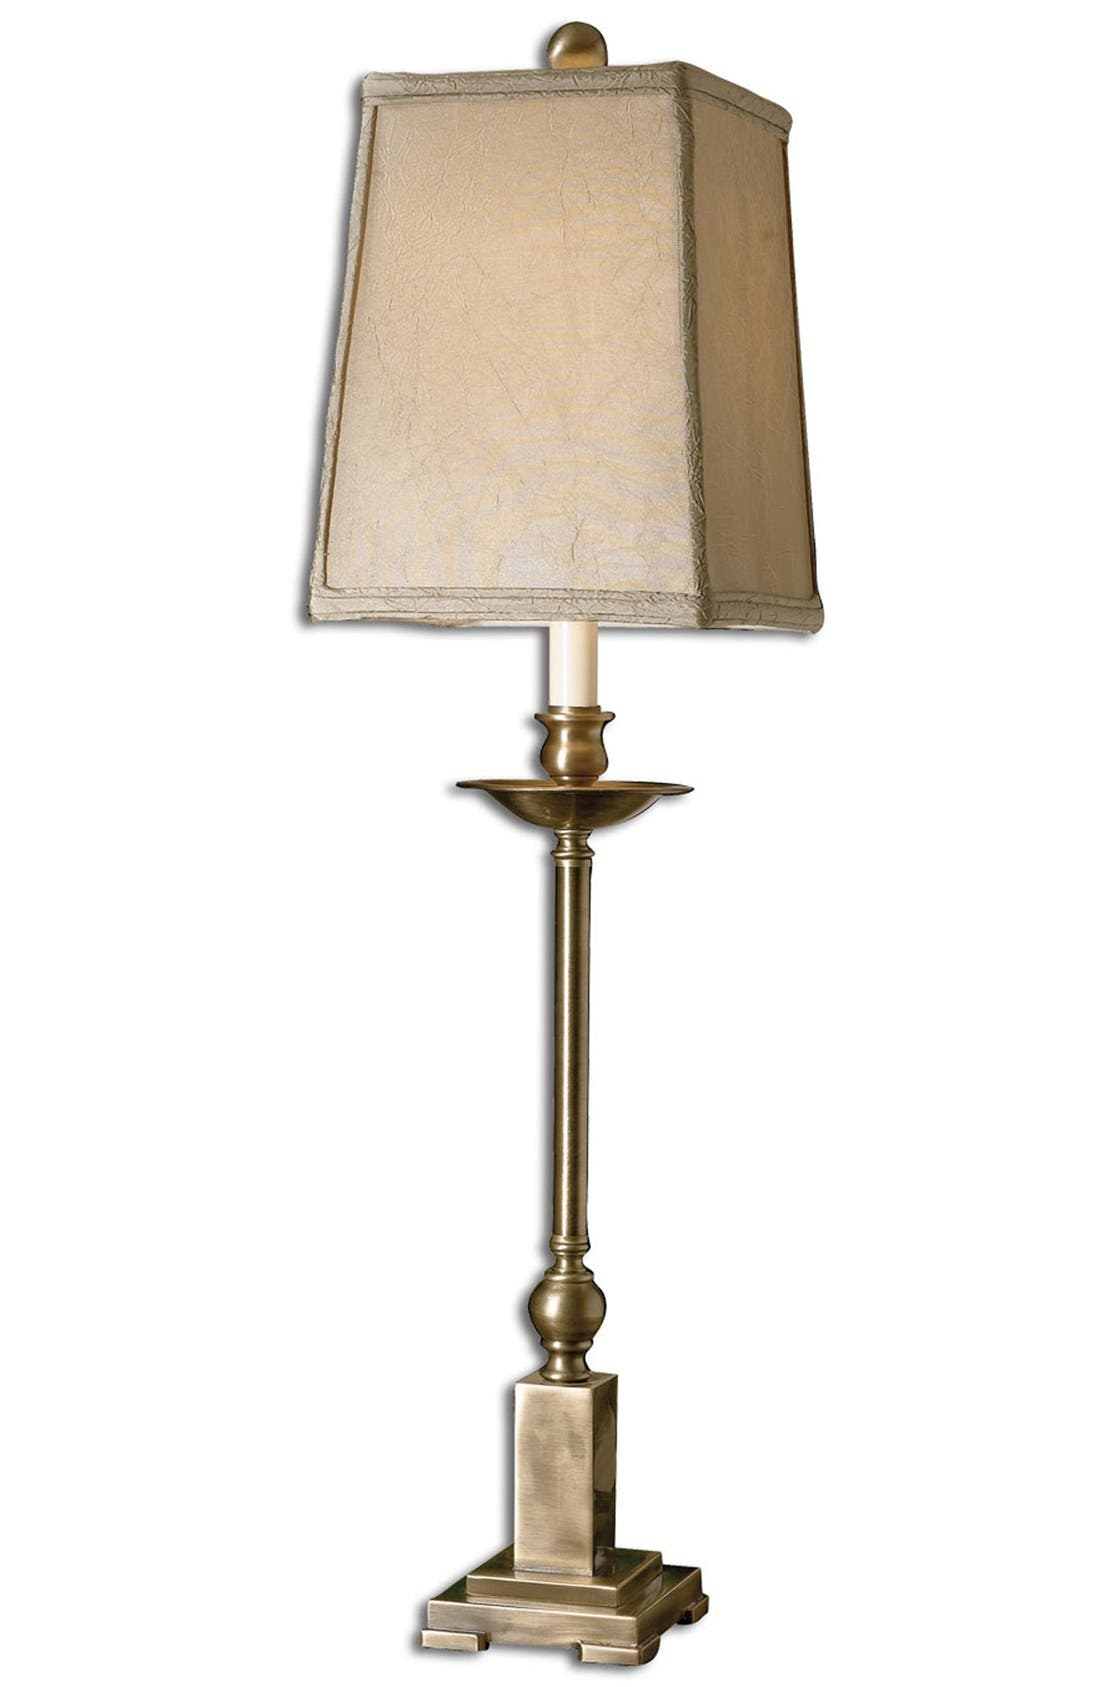 Alternate Image 1 Selected - Uttermost 'Lowell' Candlestick Buffet Lamp